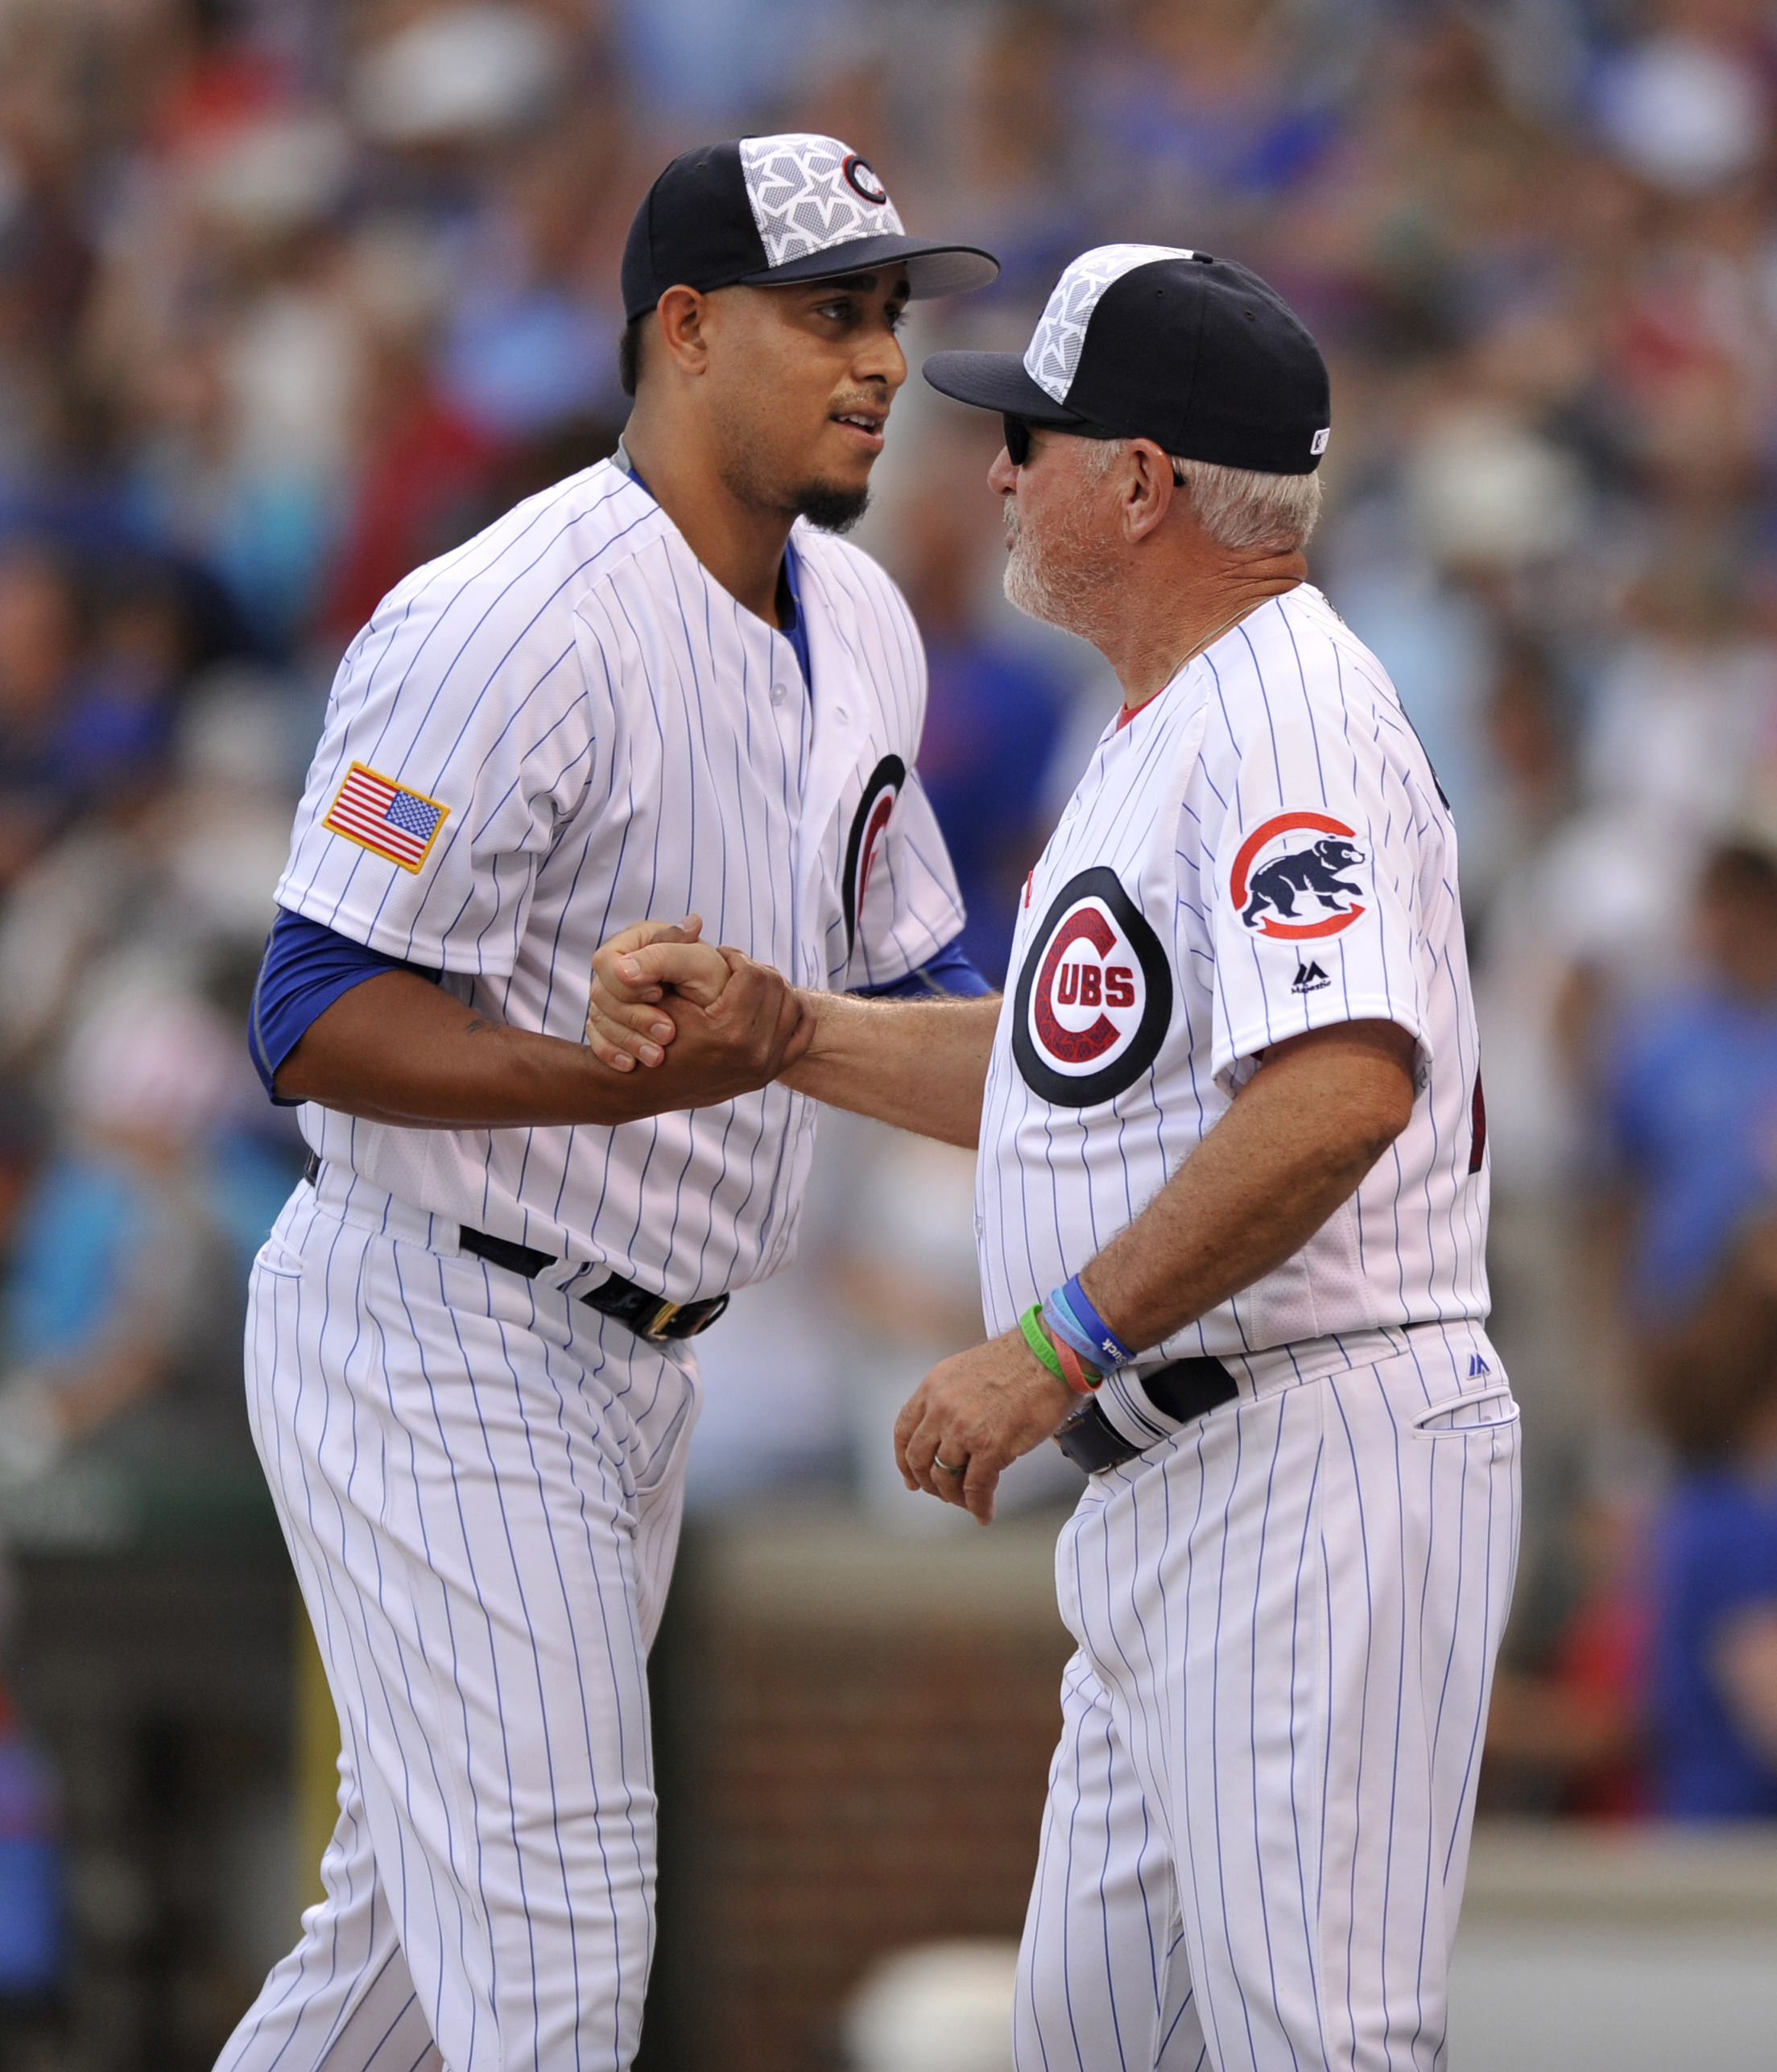 Chicago Cubs closing pitcher Hector Rondon left, celebrates with manager Joe Maddon right, after defeating the Cincinnati Reds in a baseball game Monday, July 4, 2016, in Chicago. (AP Photo/Paul Beaty)